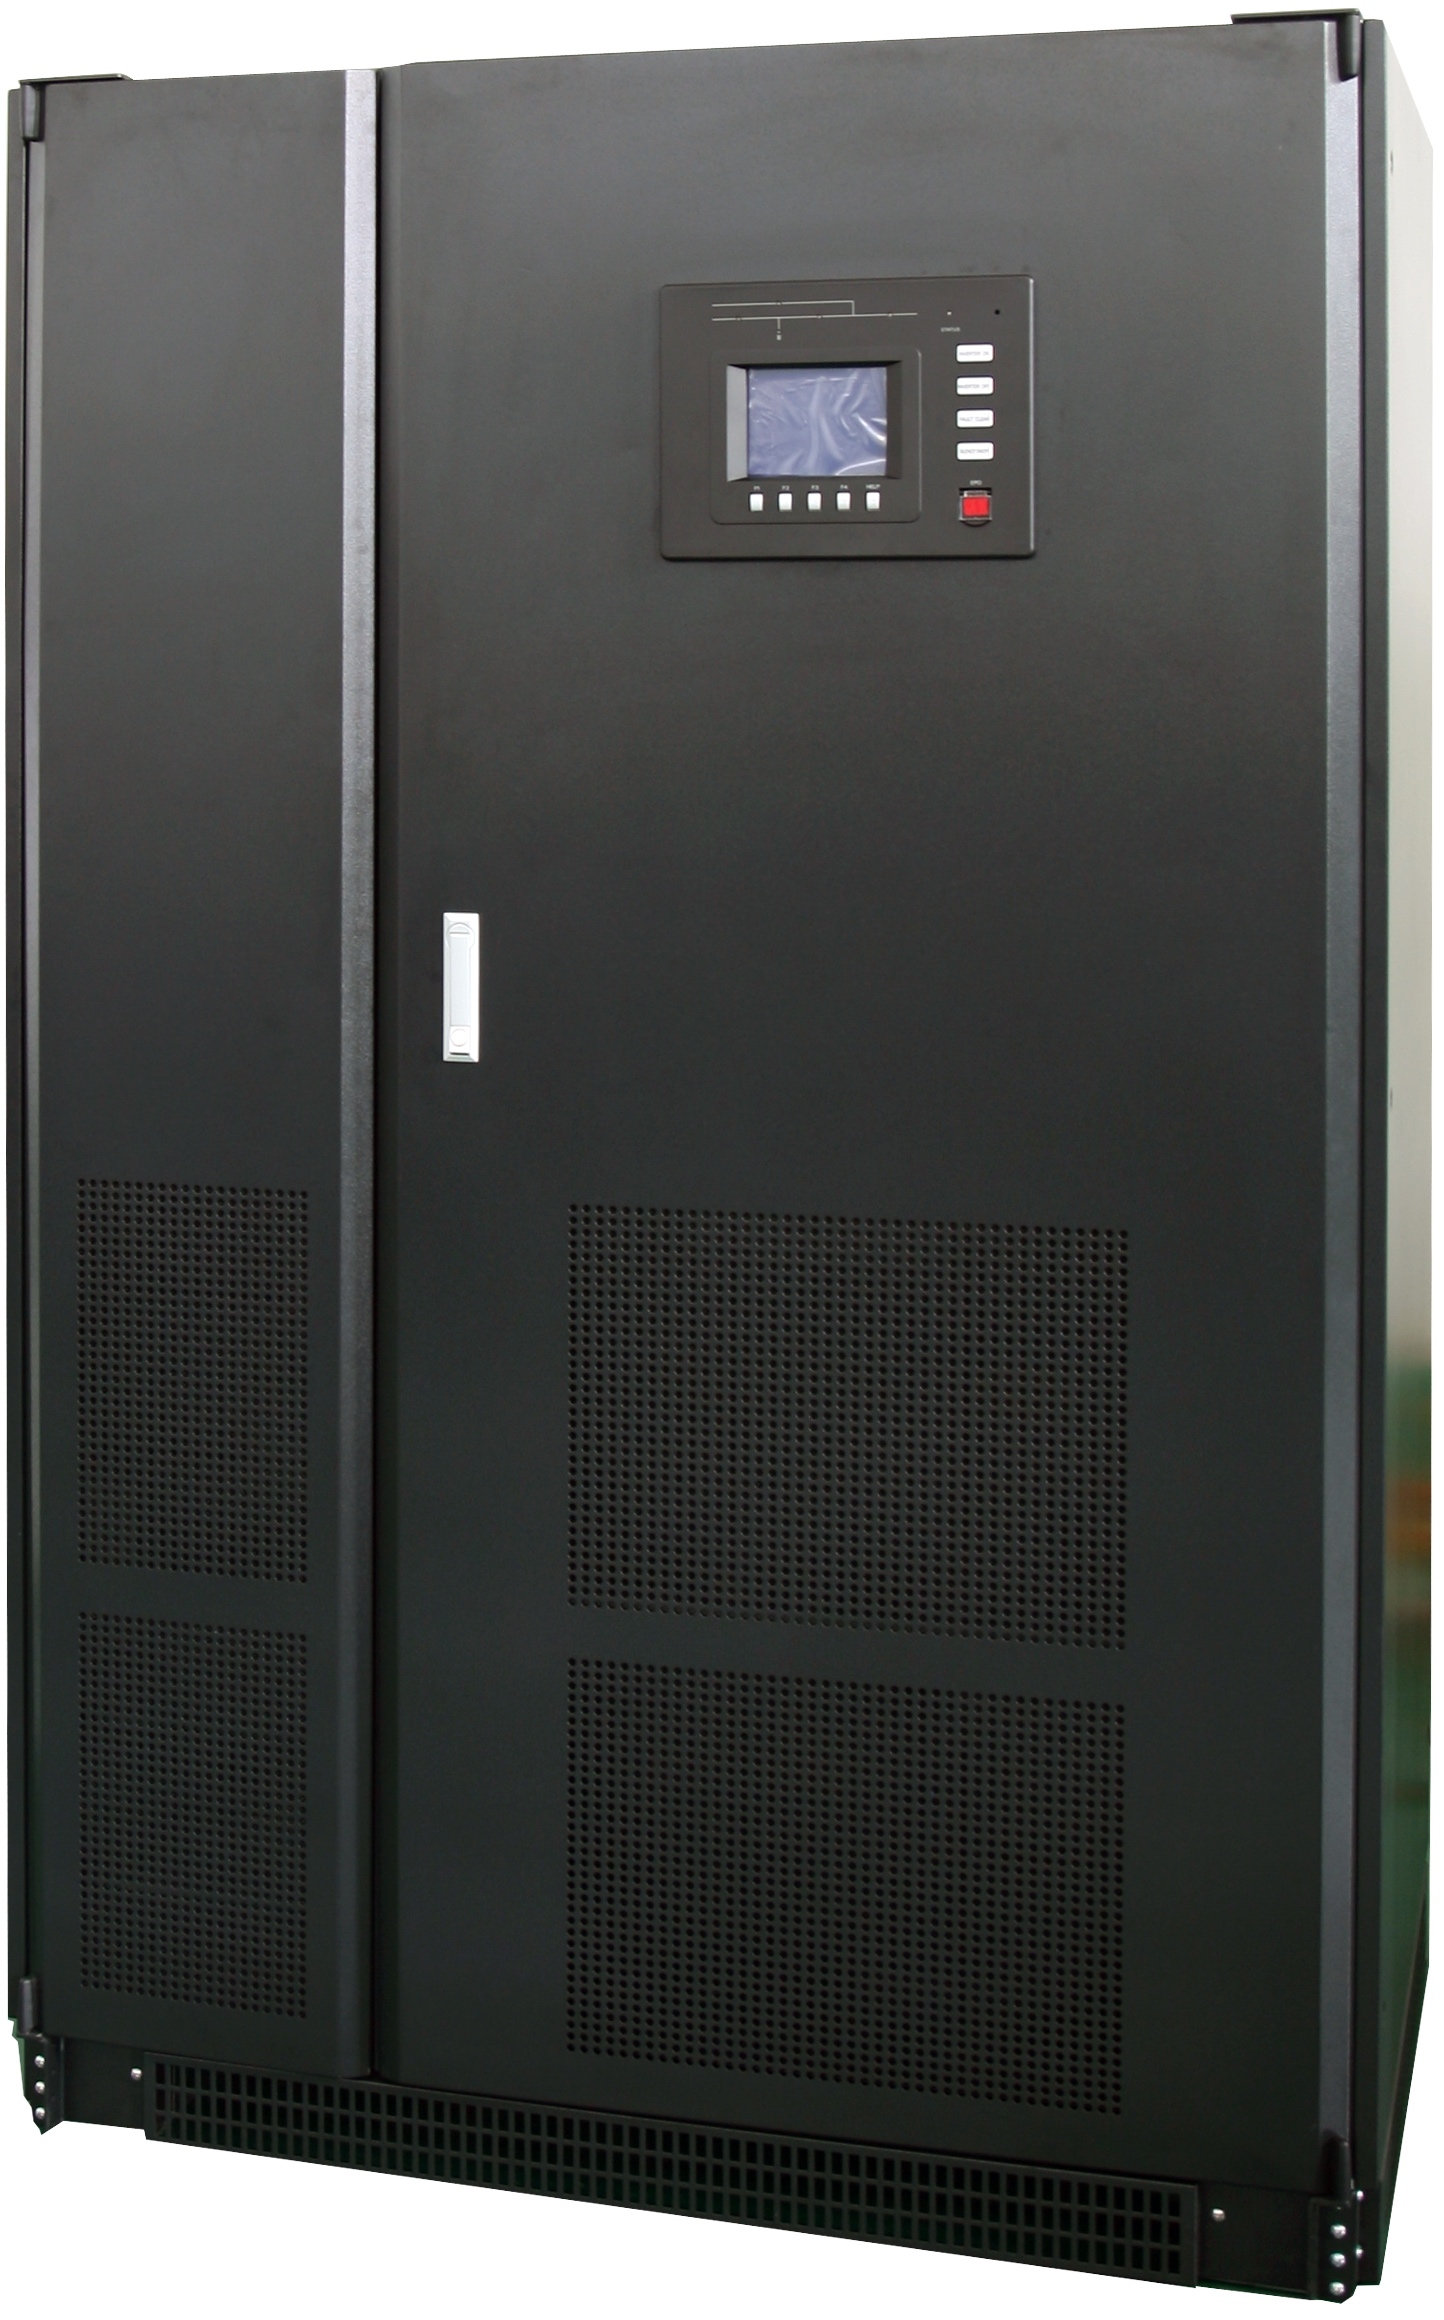 RP-N Series 3 Phase 200KVA Low Frequency Transformer-Based Online UPS